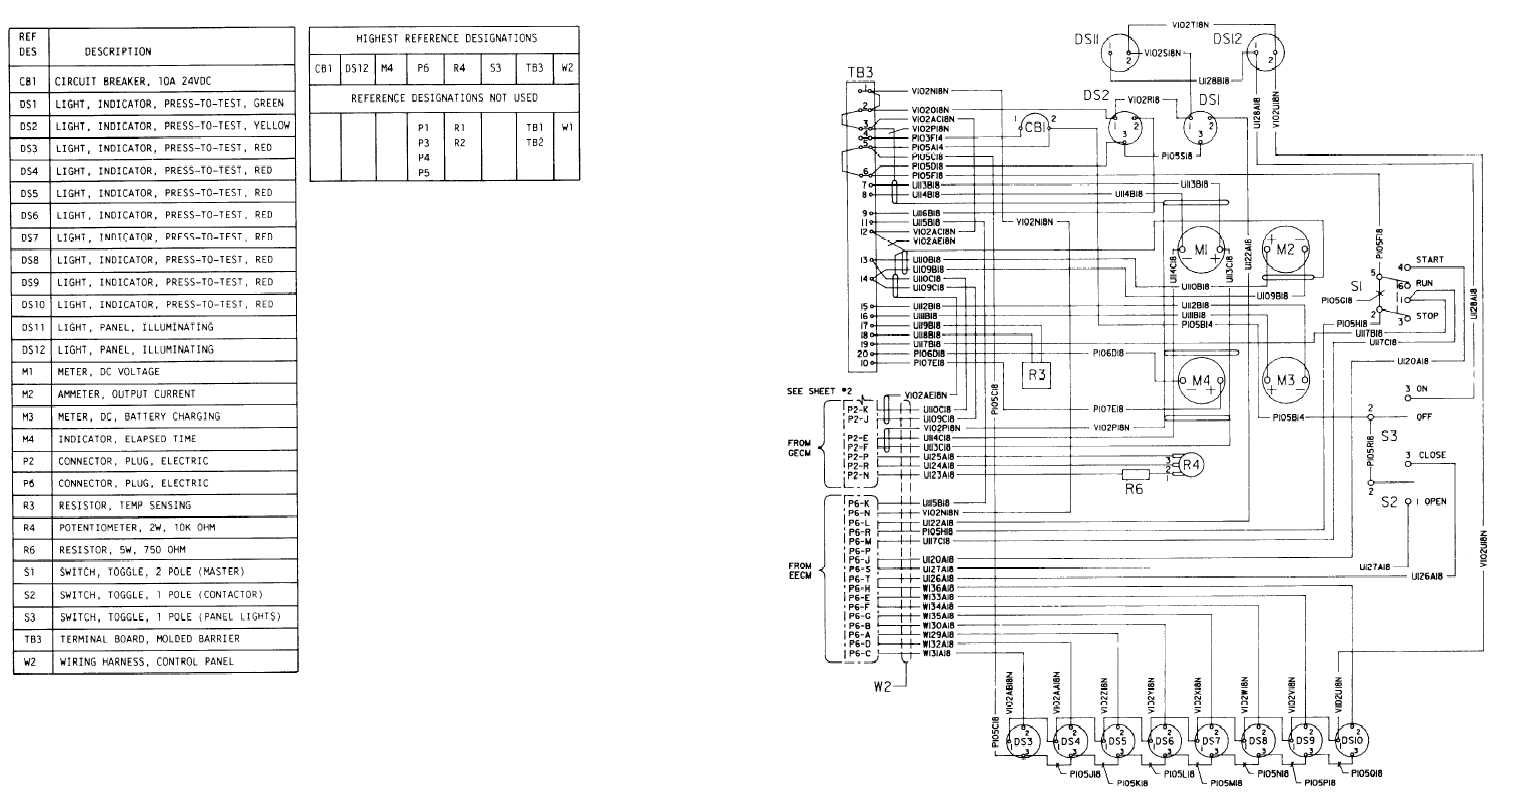 11kv control panel wiring diagram